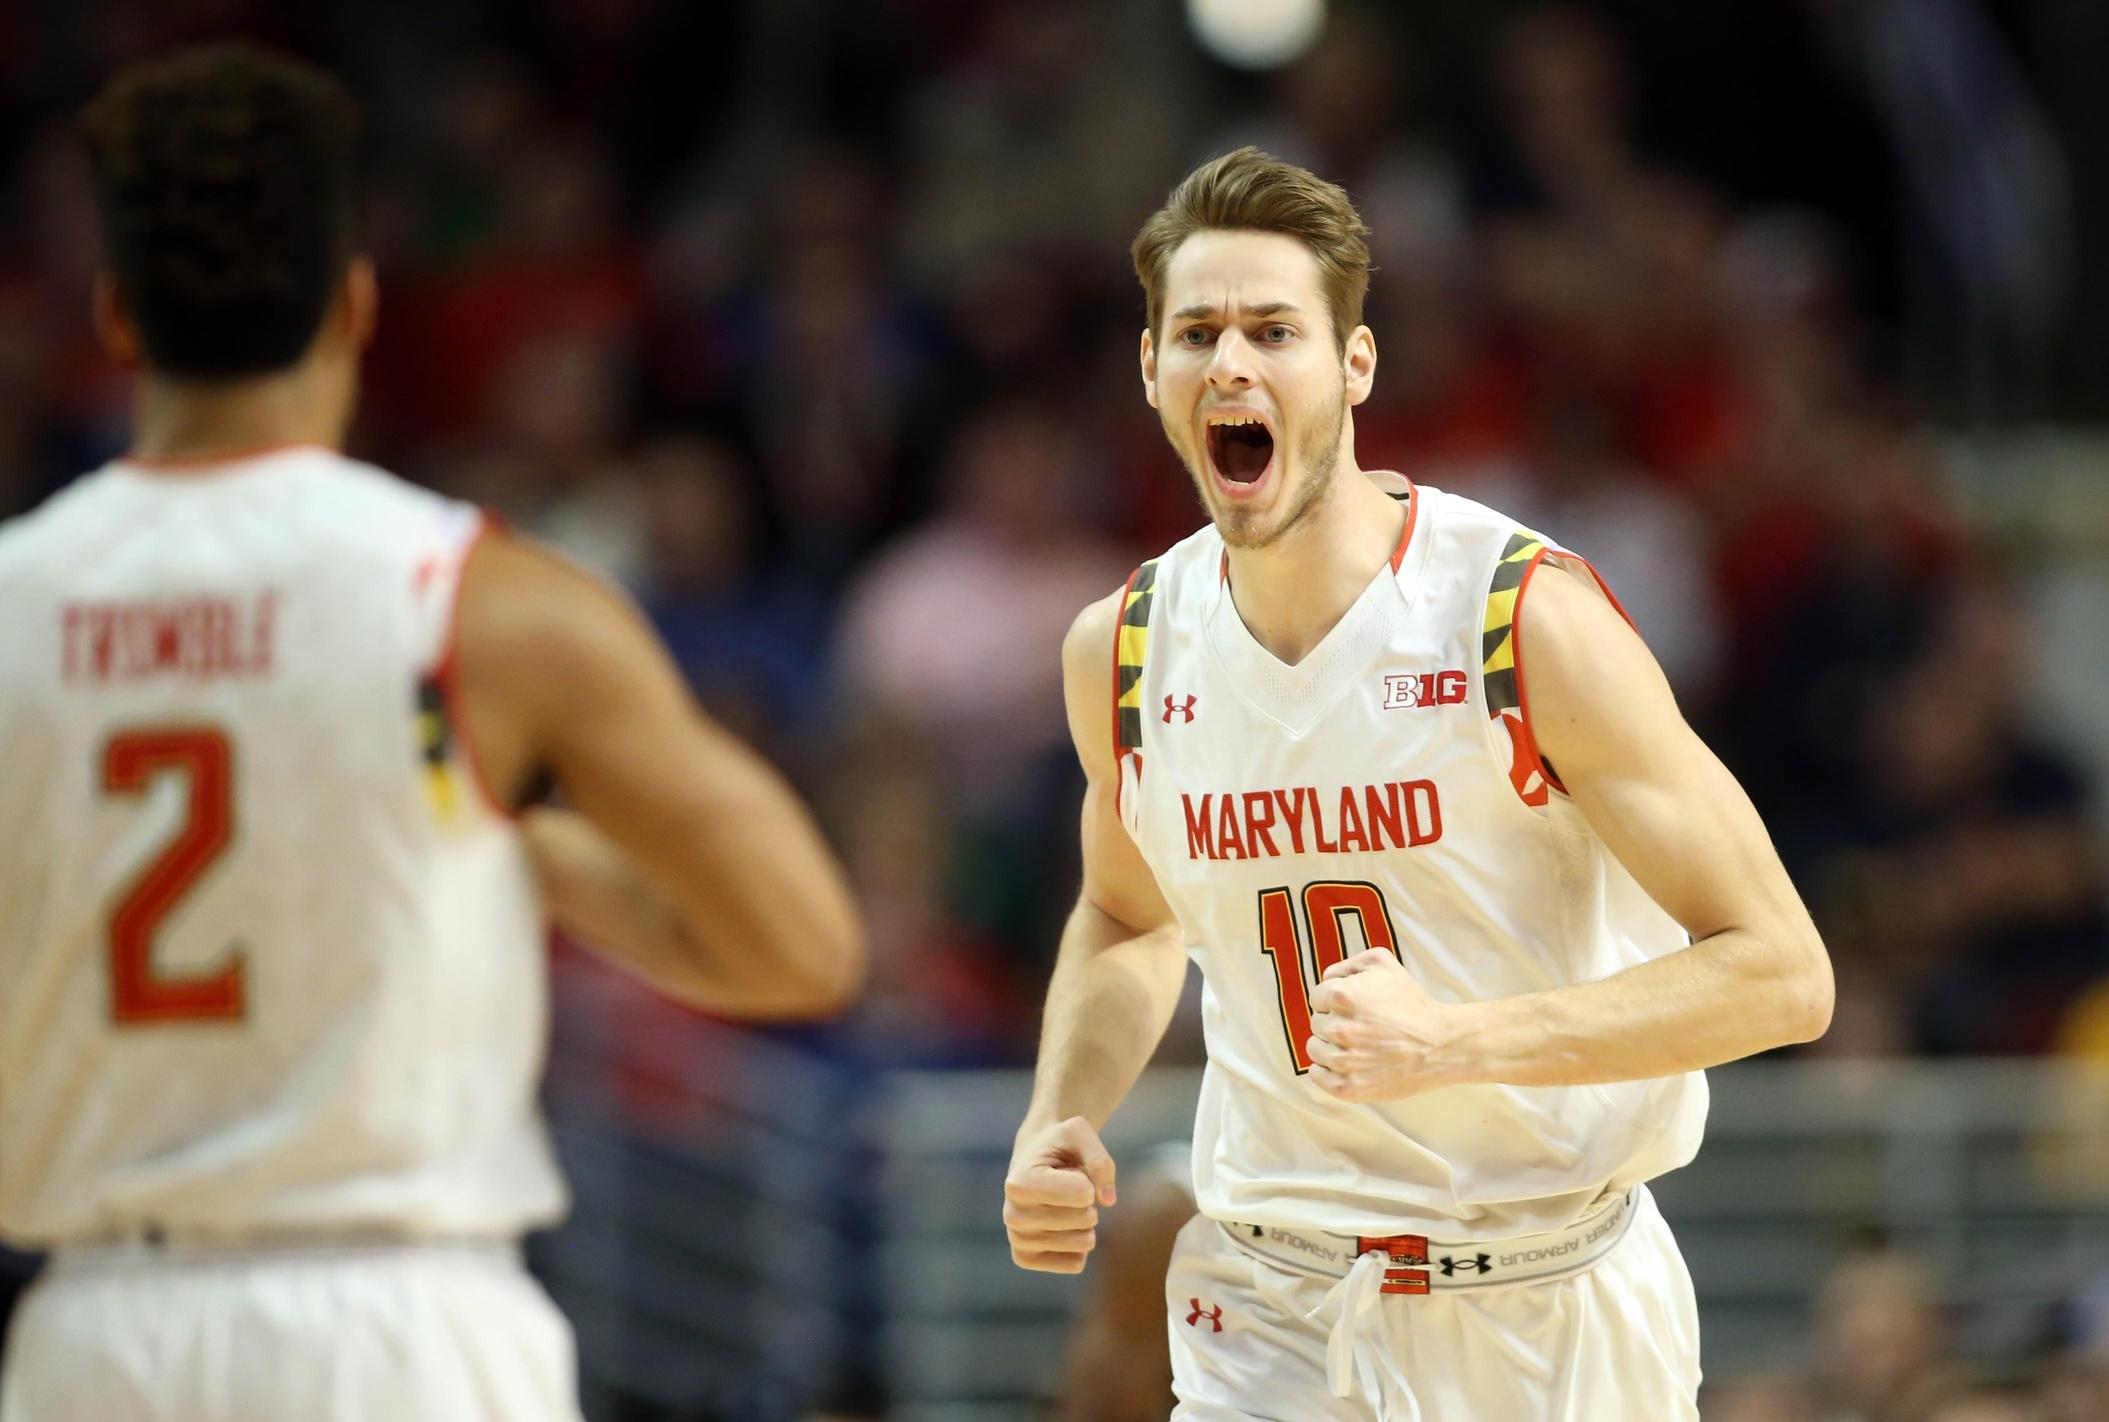 Full 2015-16 Maryland men's basketball schedule released